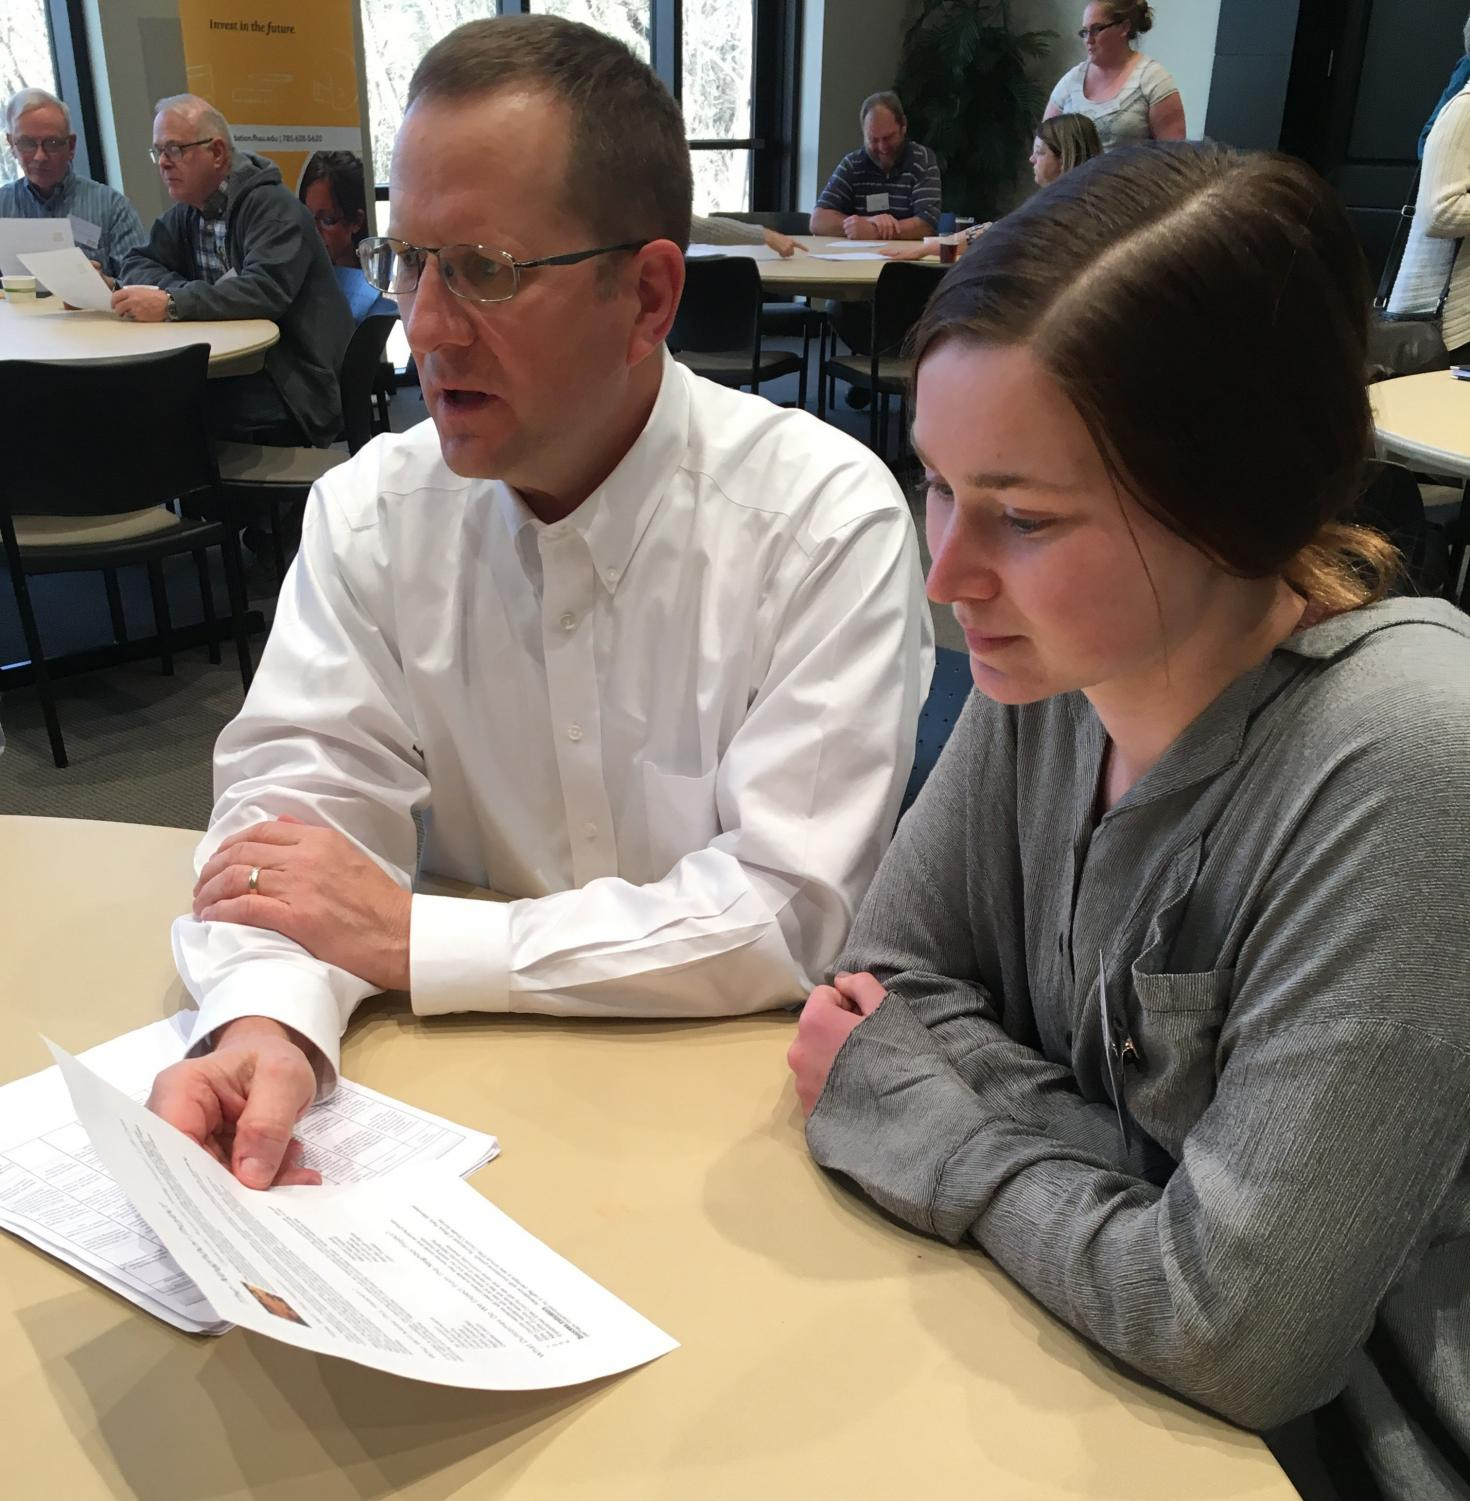 Senior Lisa Schoenberger and Principal Martin Straub look over the handout for the Neighborhood Project. The project was put together by a committee with the intent to bring together members of our community.